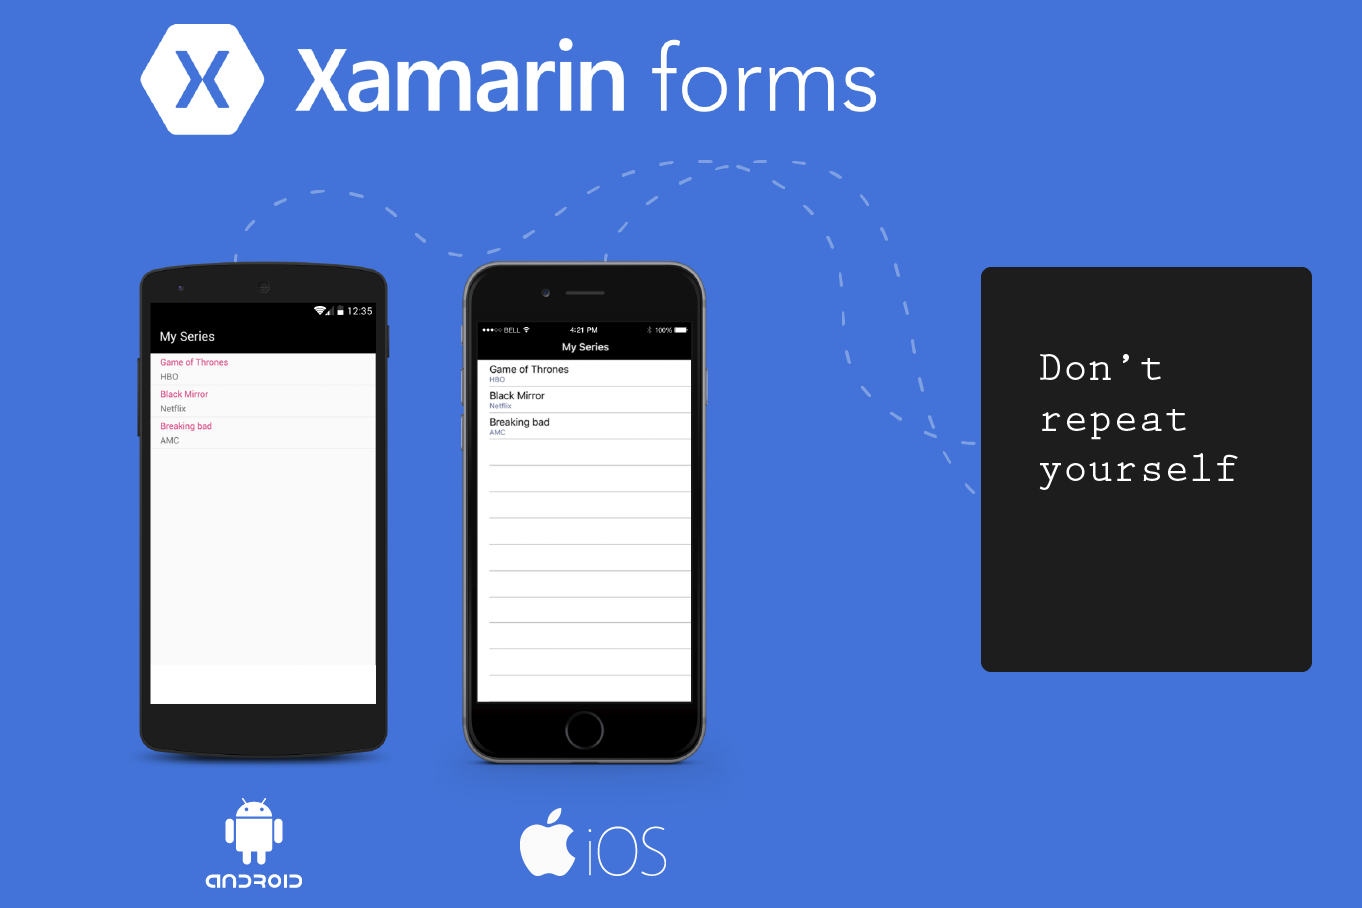 Xamarin.forms shared project gives error while creation